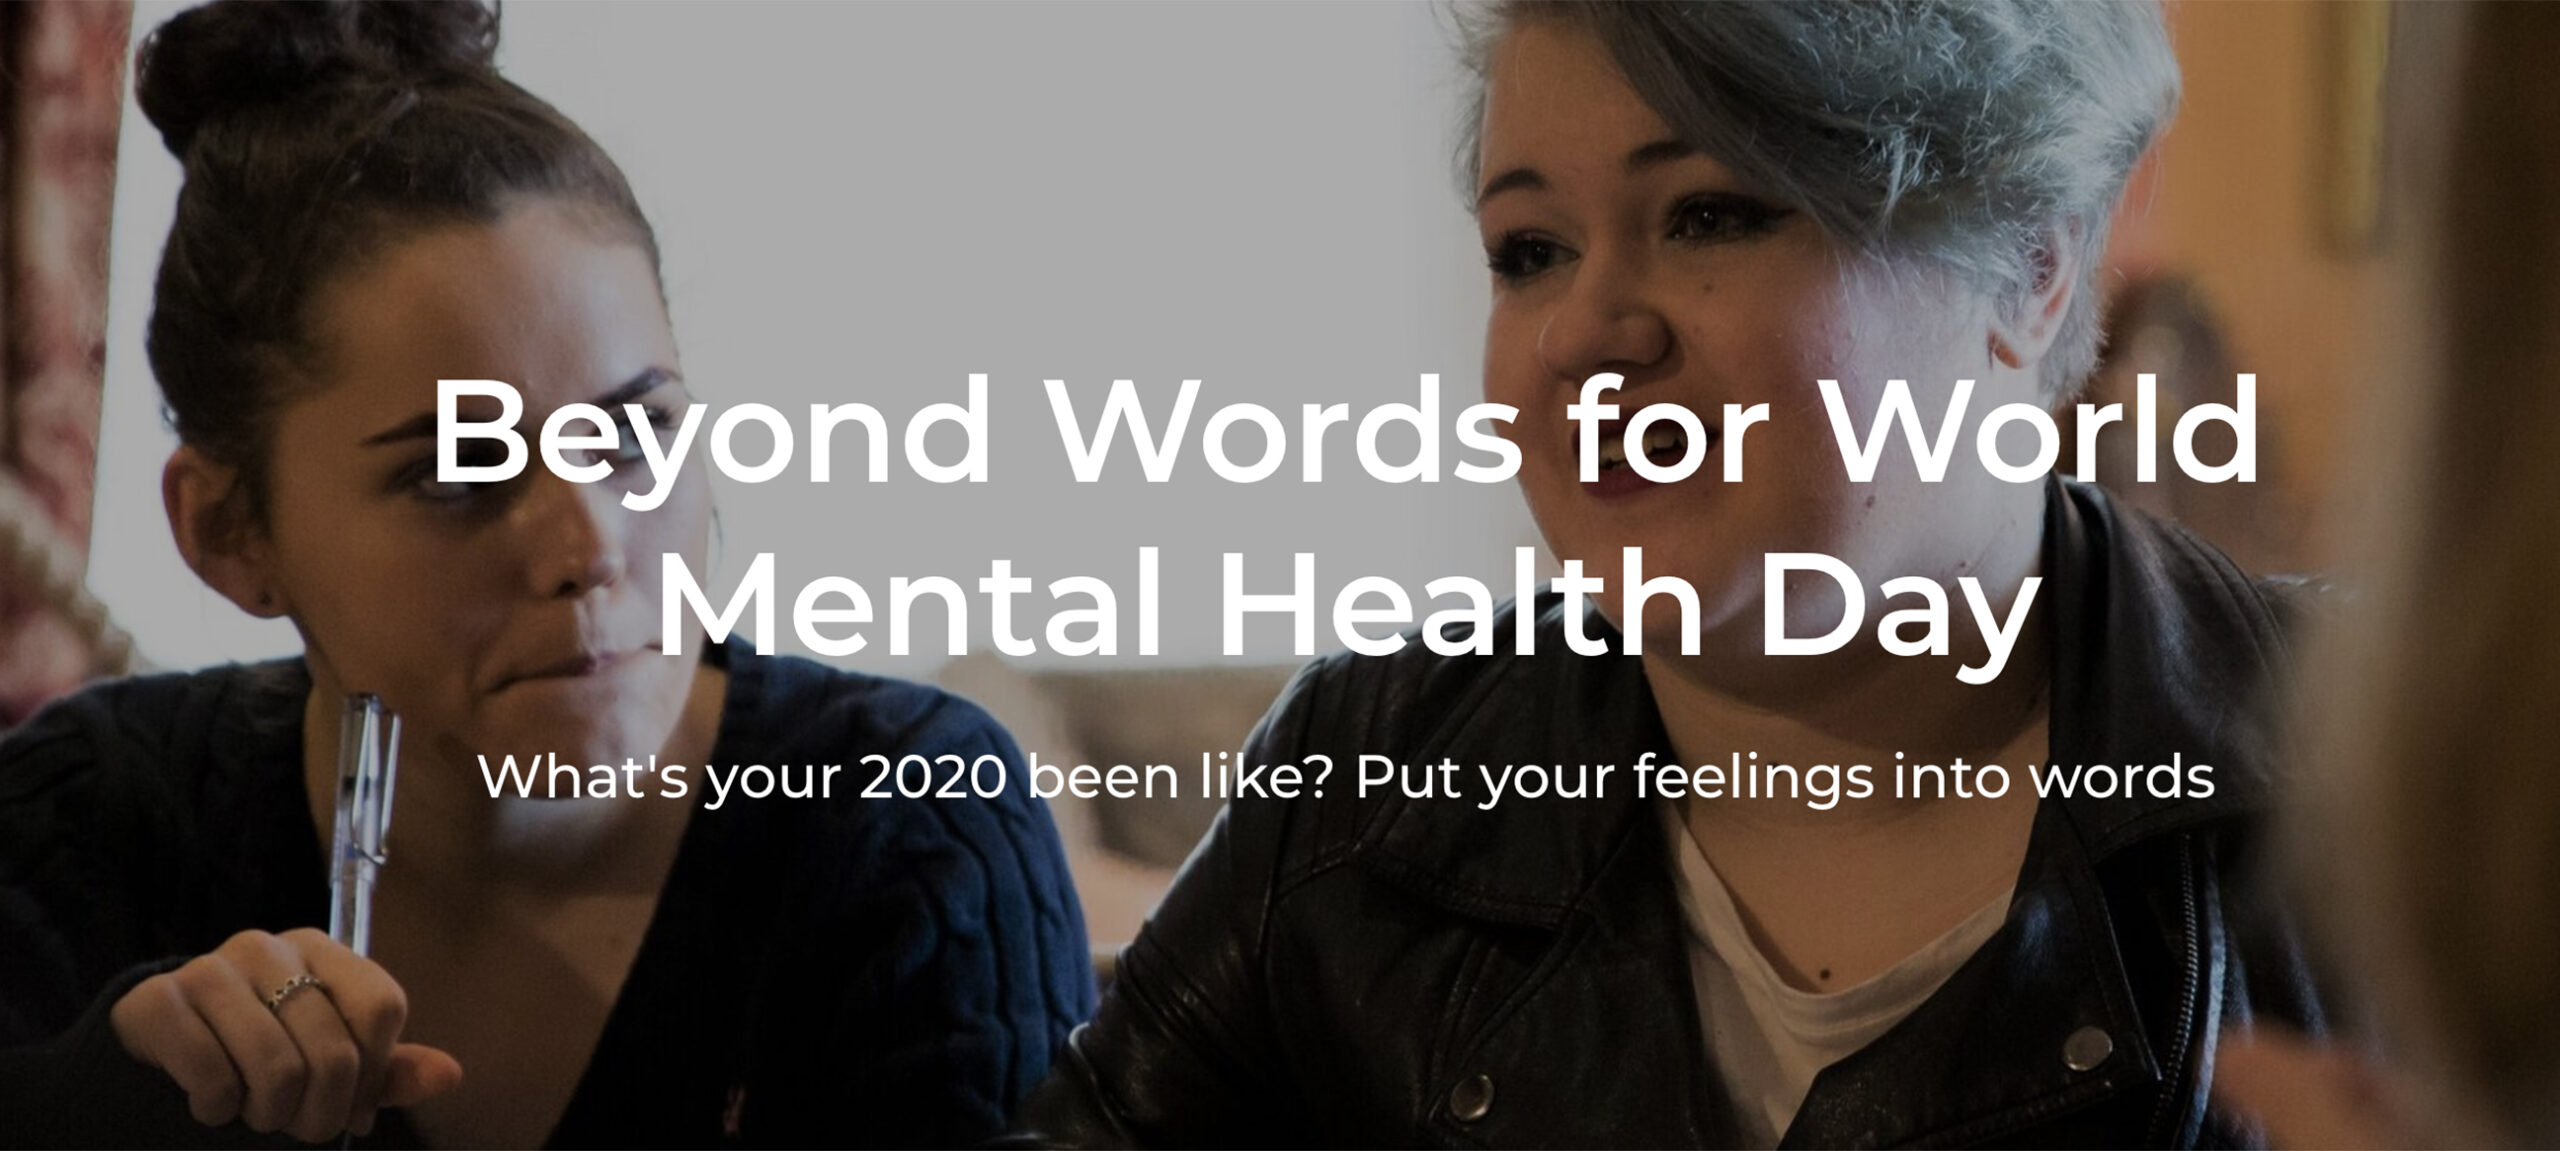 Beyond Words for World Mental Health Day